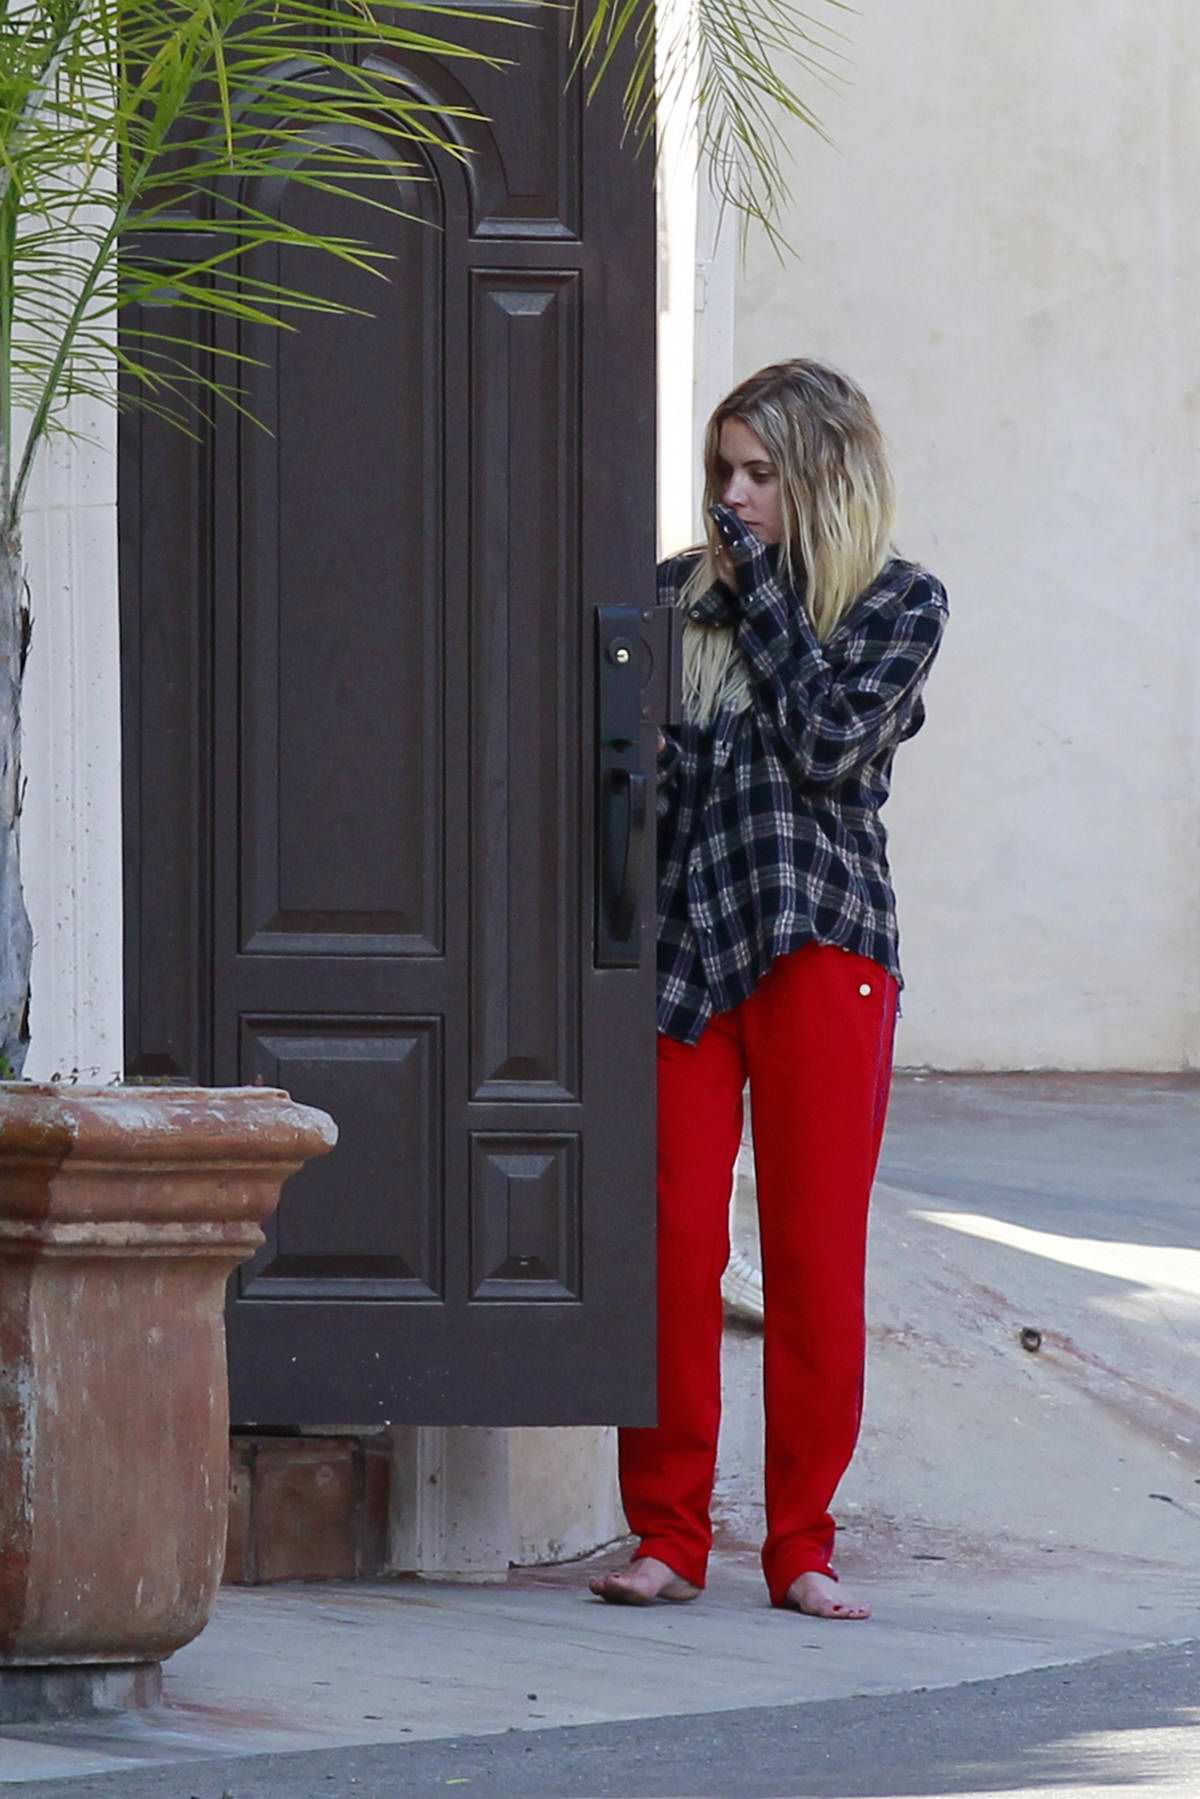 Ashley Benson goes barefoot with bright red pants as she stepped out of G-Eazy's house in Los Angeles